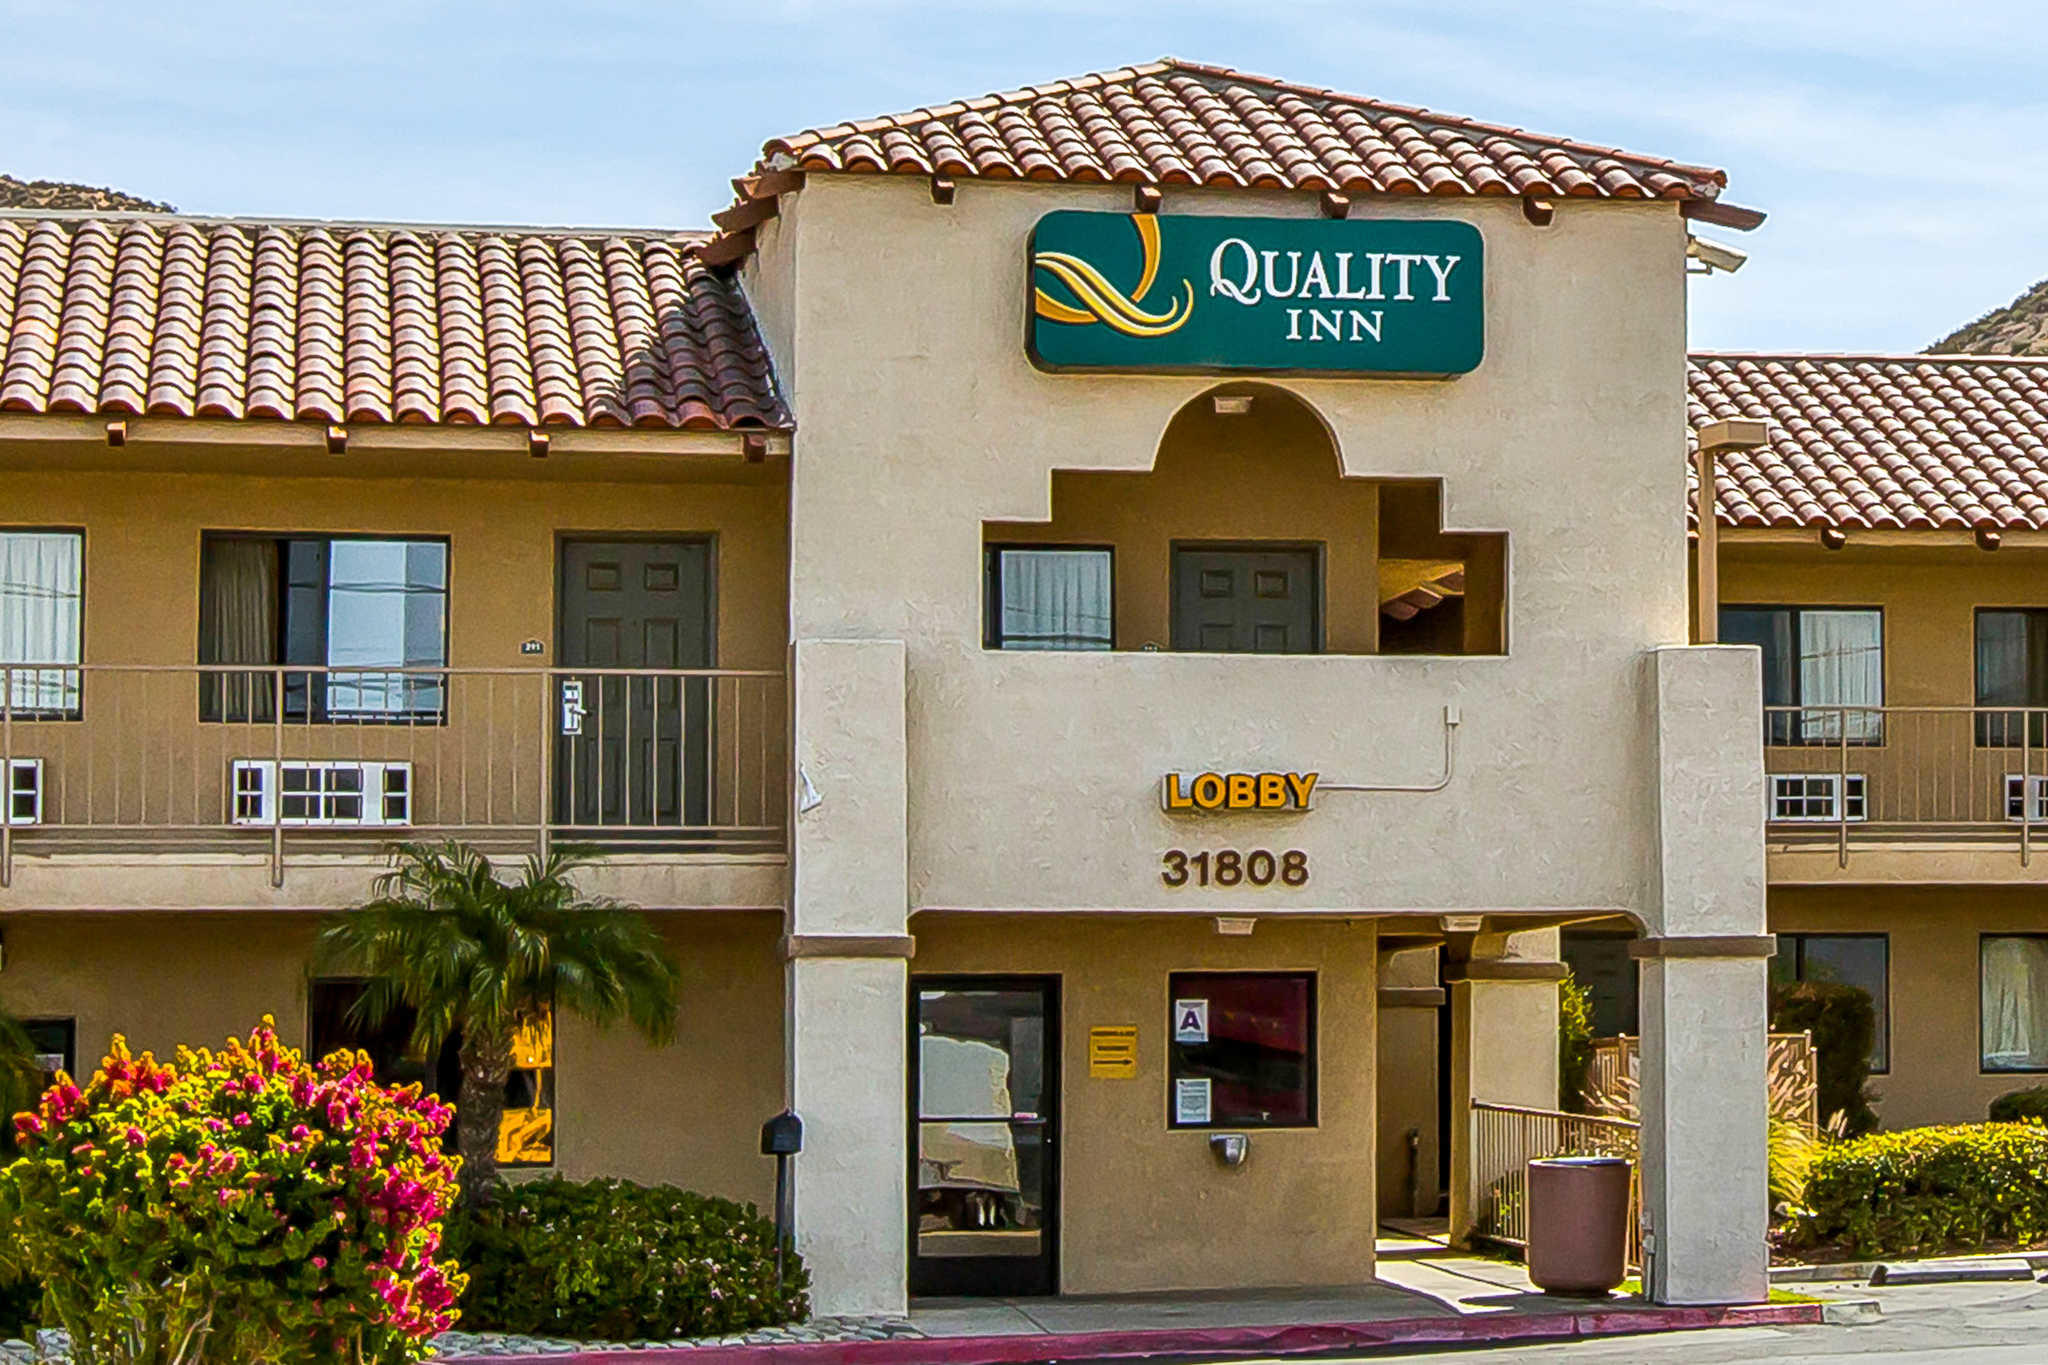 Quality Inn Lake Elsinore I-15 image 2